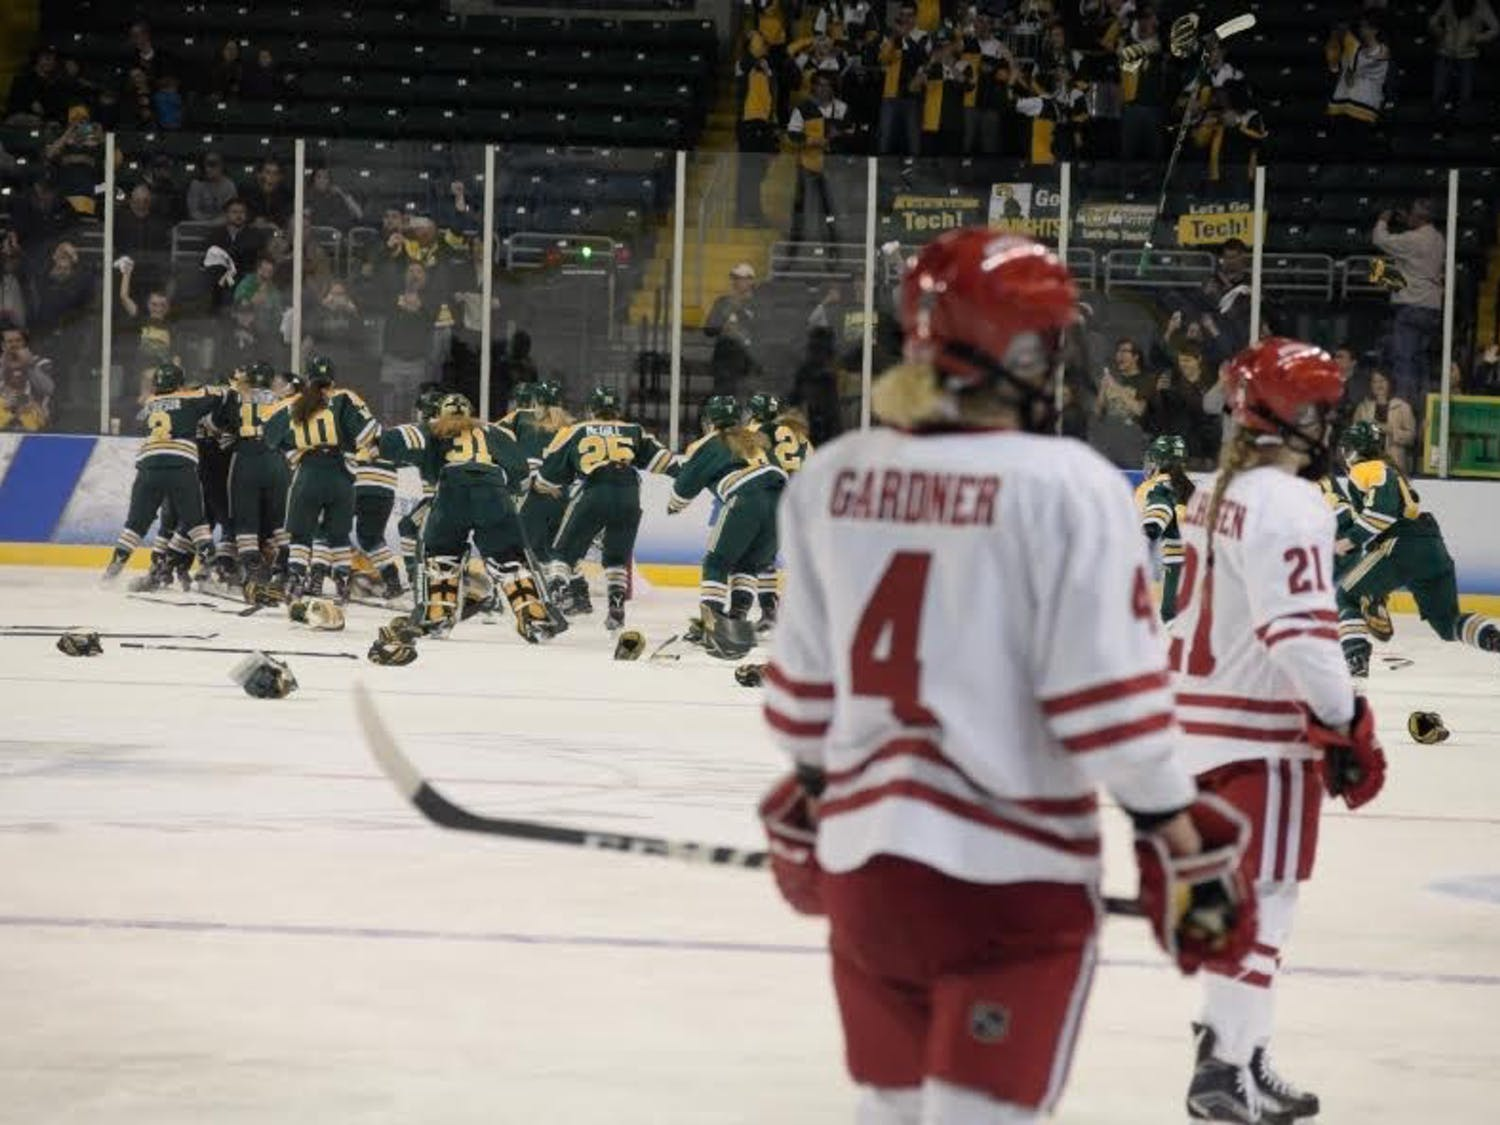 The Wisconsin Badgers fell one win short of capturing their fifth national title in program history.The Clarkson Knights celebrate their championship in the background as the horn sounds.